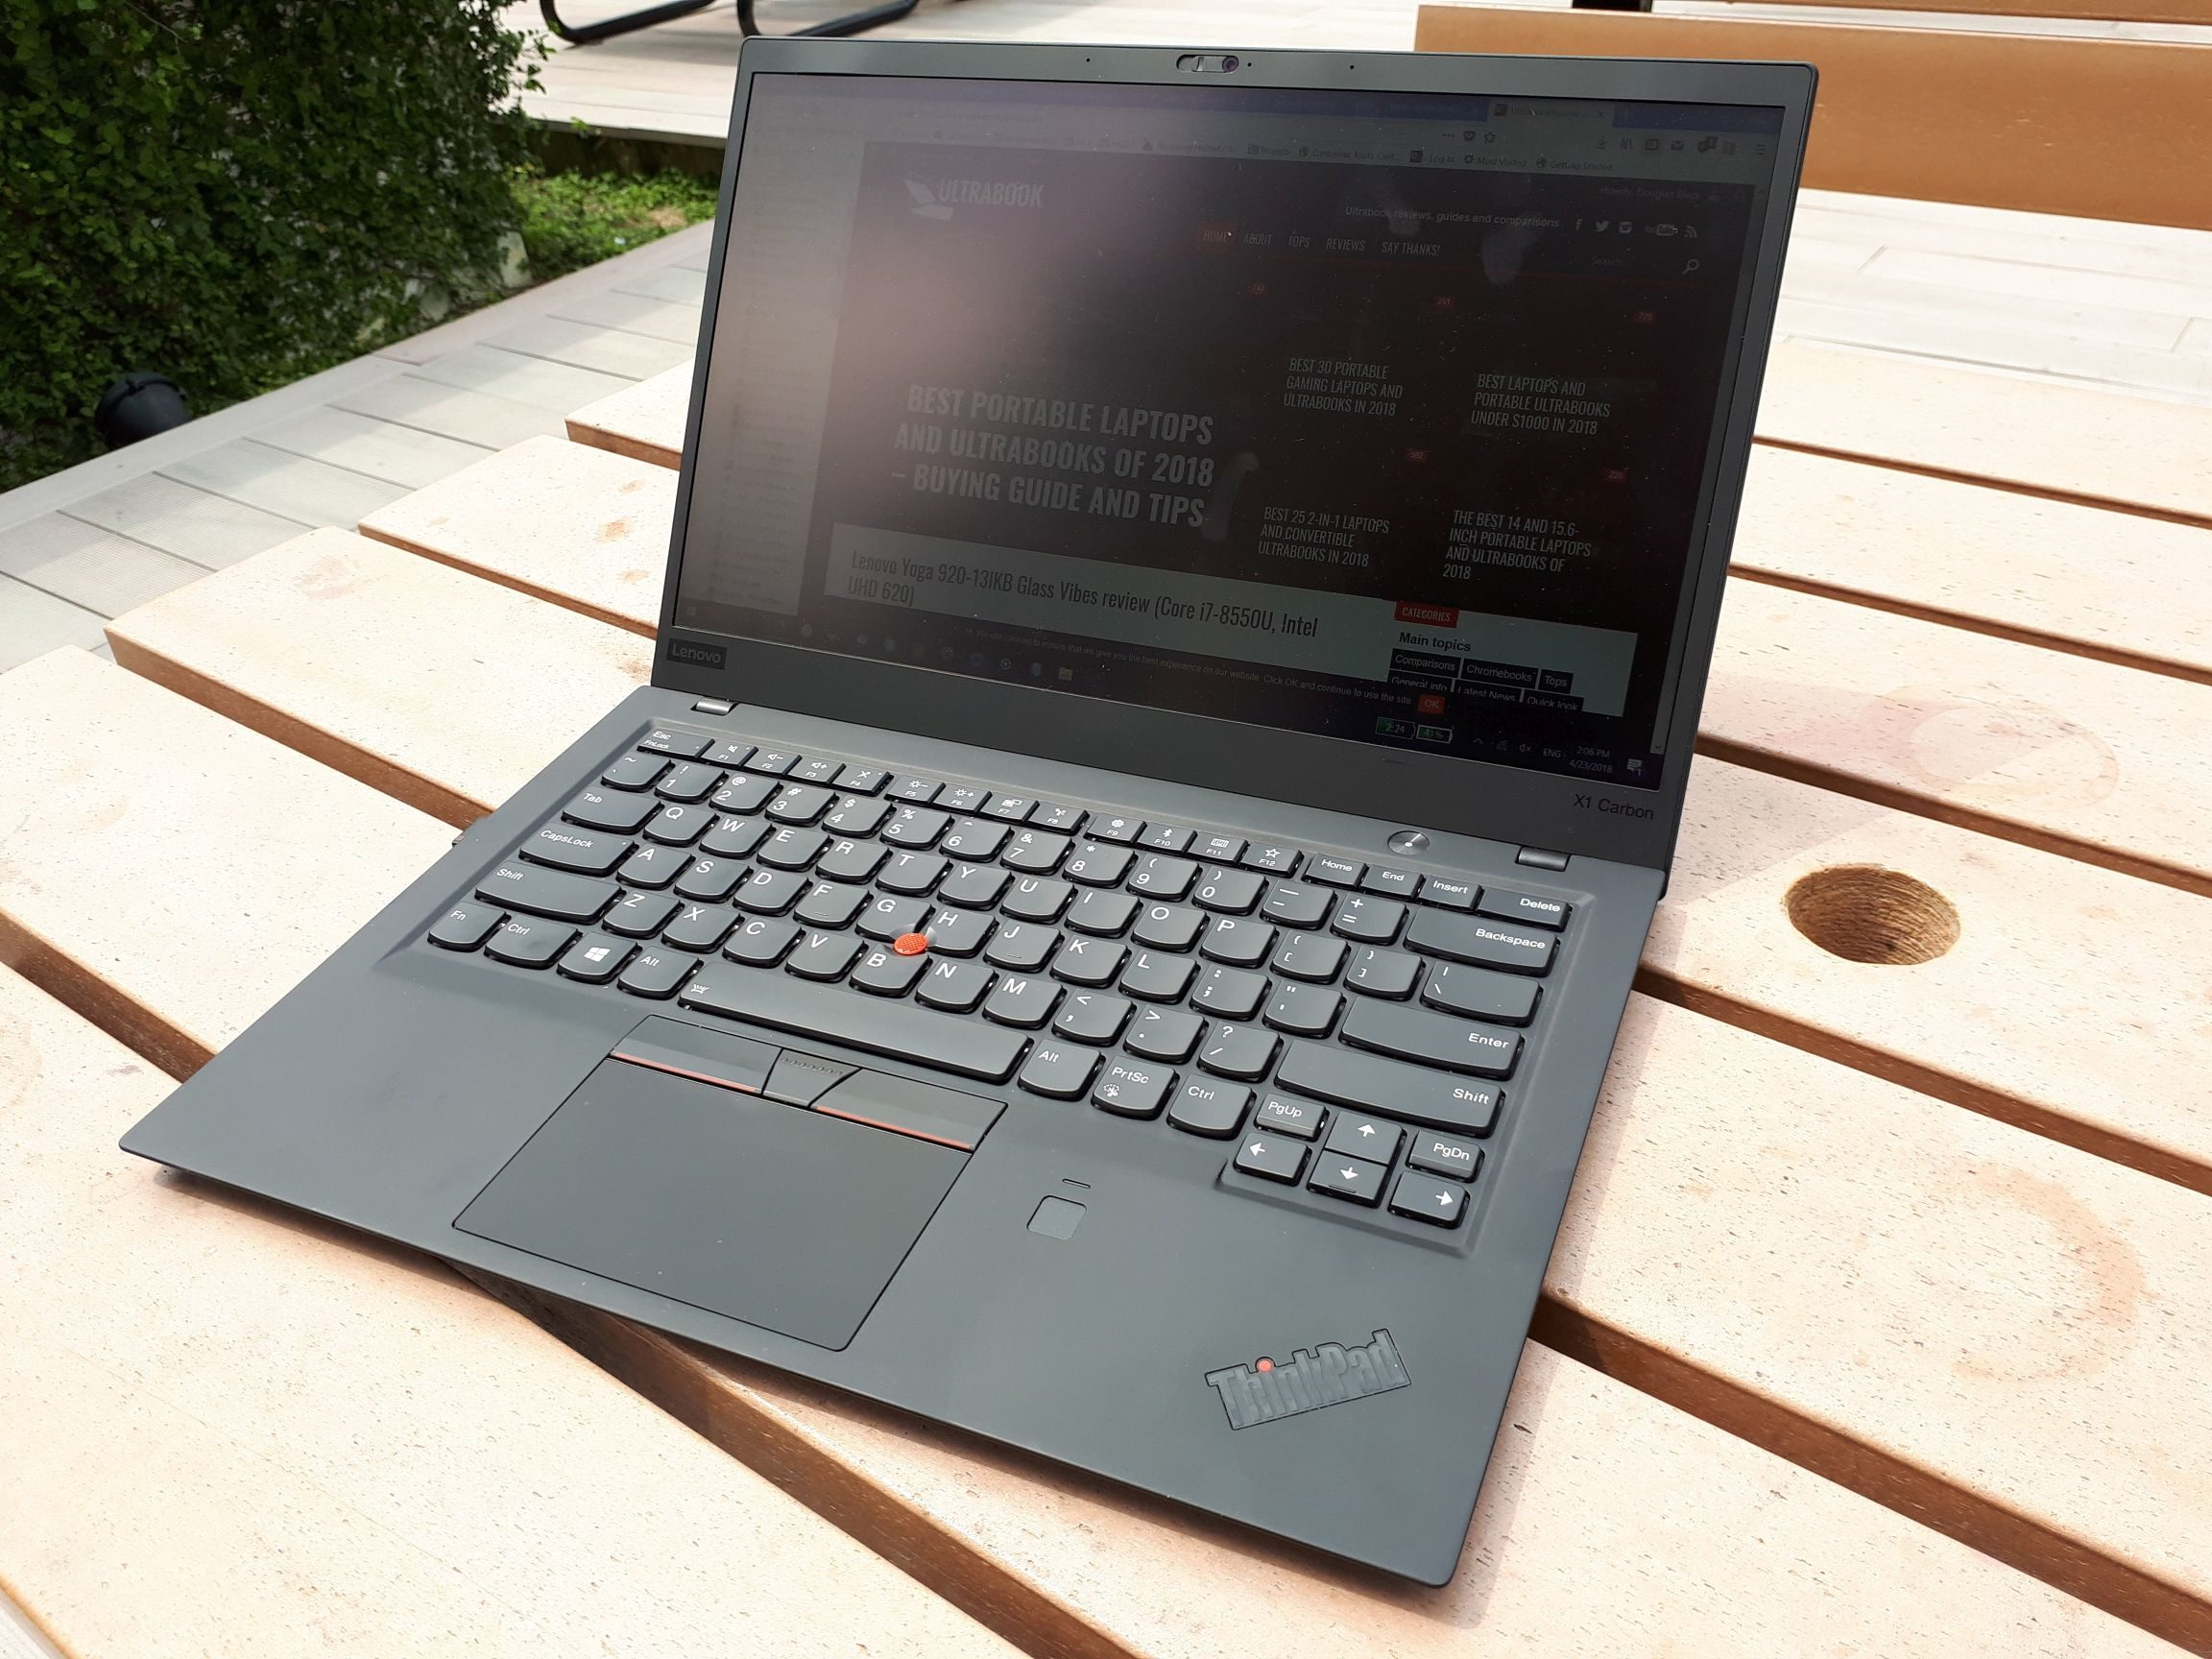 The Lenovo X1 Carbon Gen 6